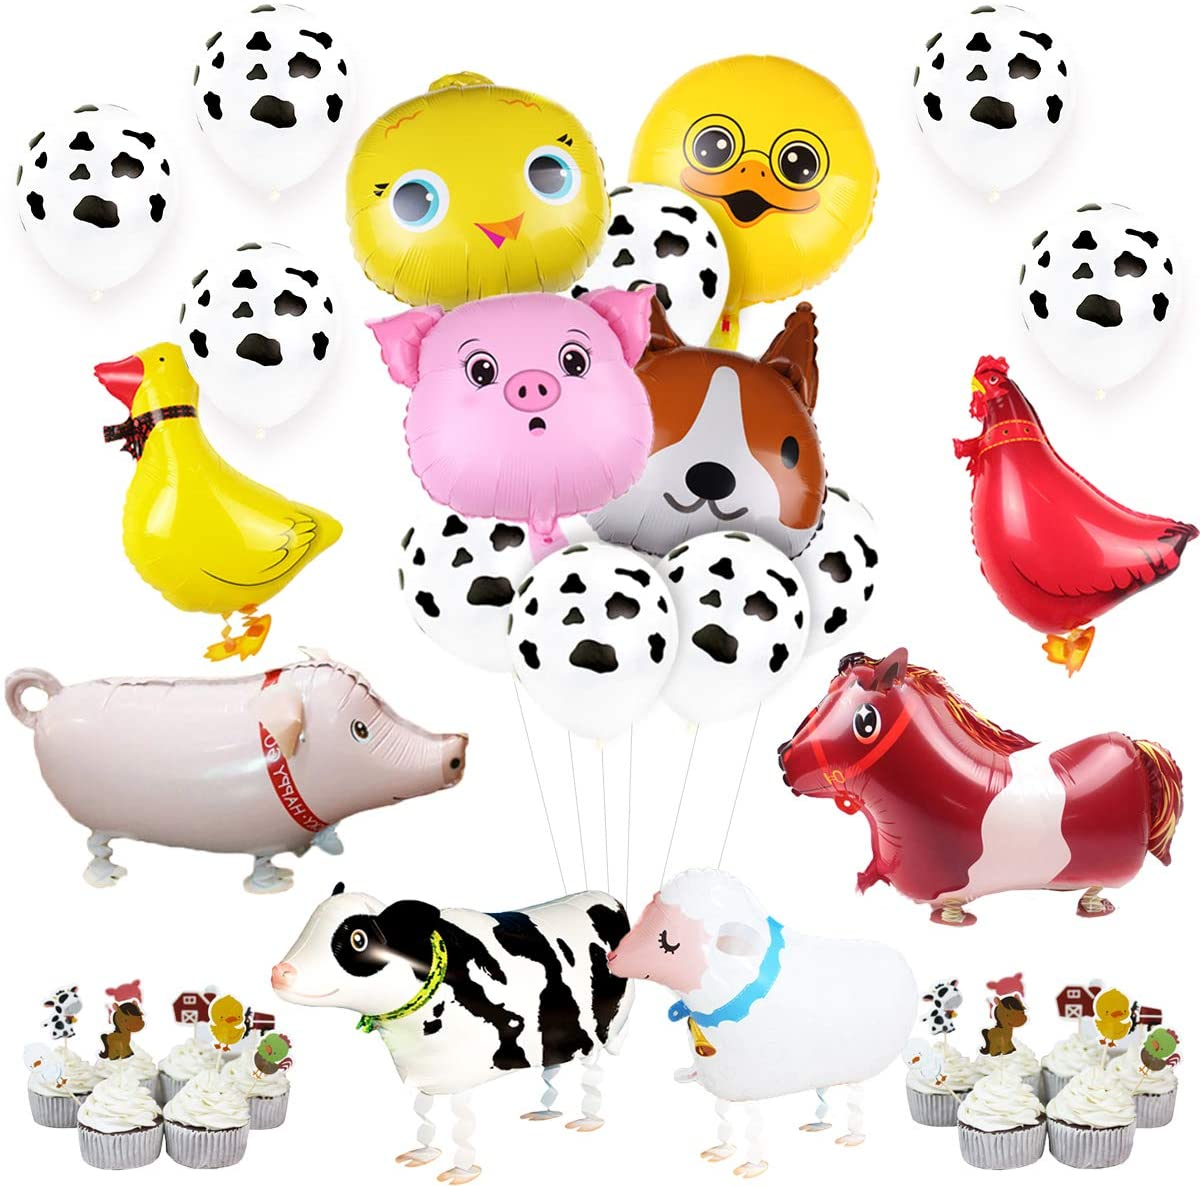 JOYMEMO Farm Animal Party Decorations Walking Animal Balloons Cake Toppers Cow Print Balloons for Boy or Girl Barnyard Farm Animals Birthday Baby Shower Party